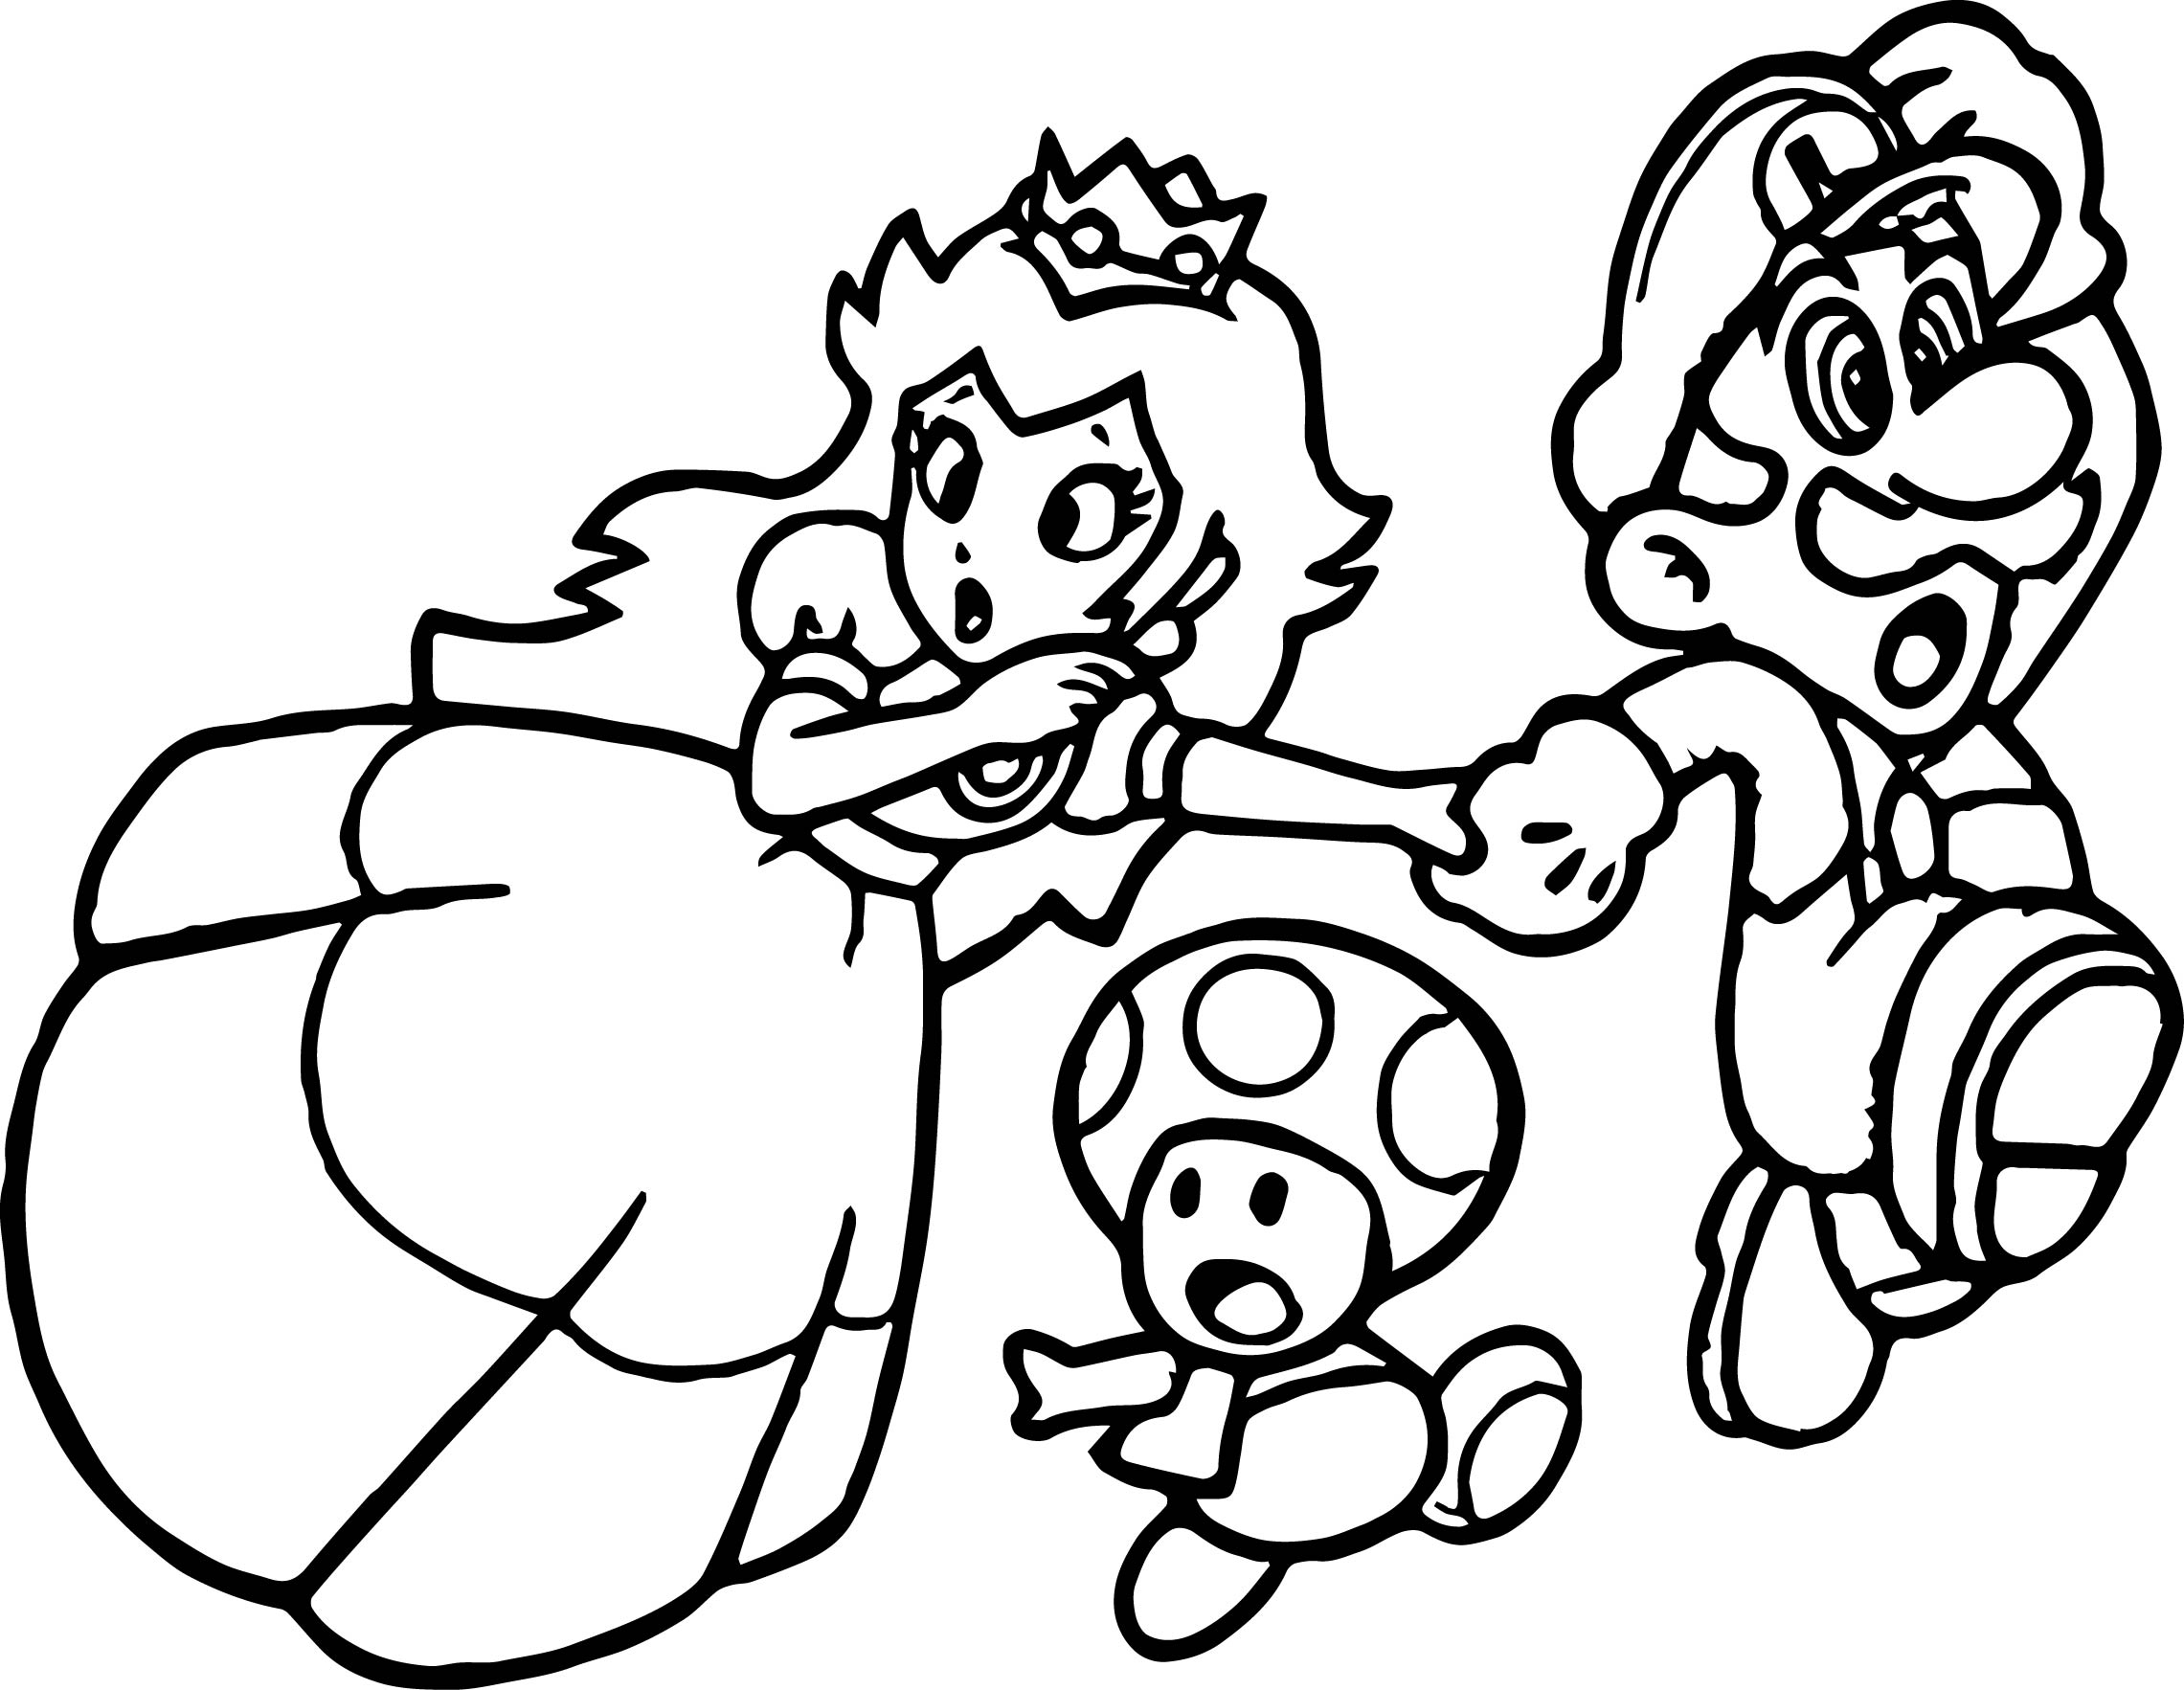 Super Mario Princess Mushroom Coloring Page Wecoloringpage